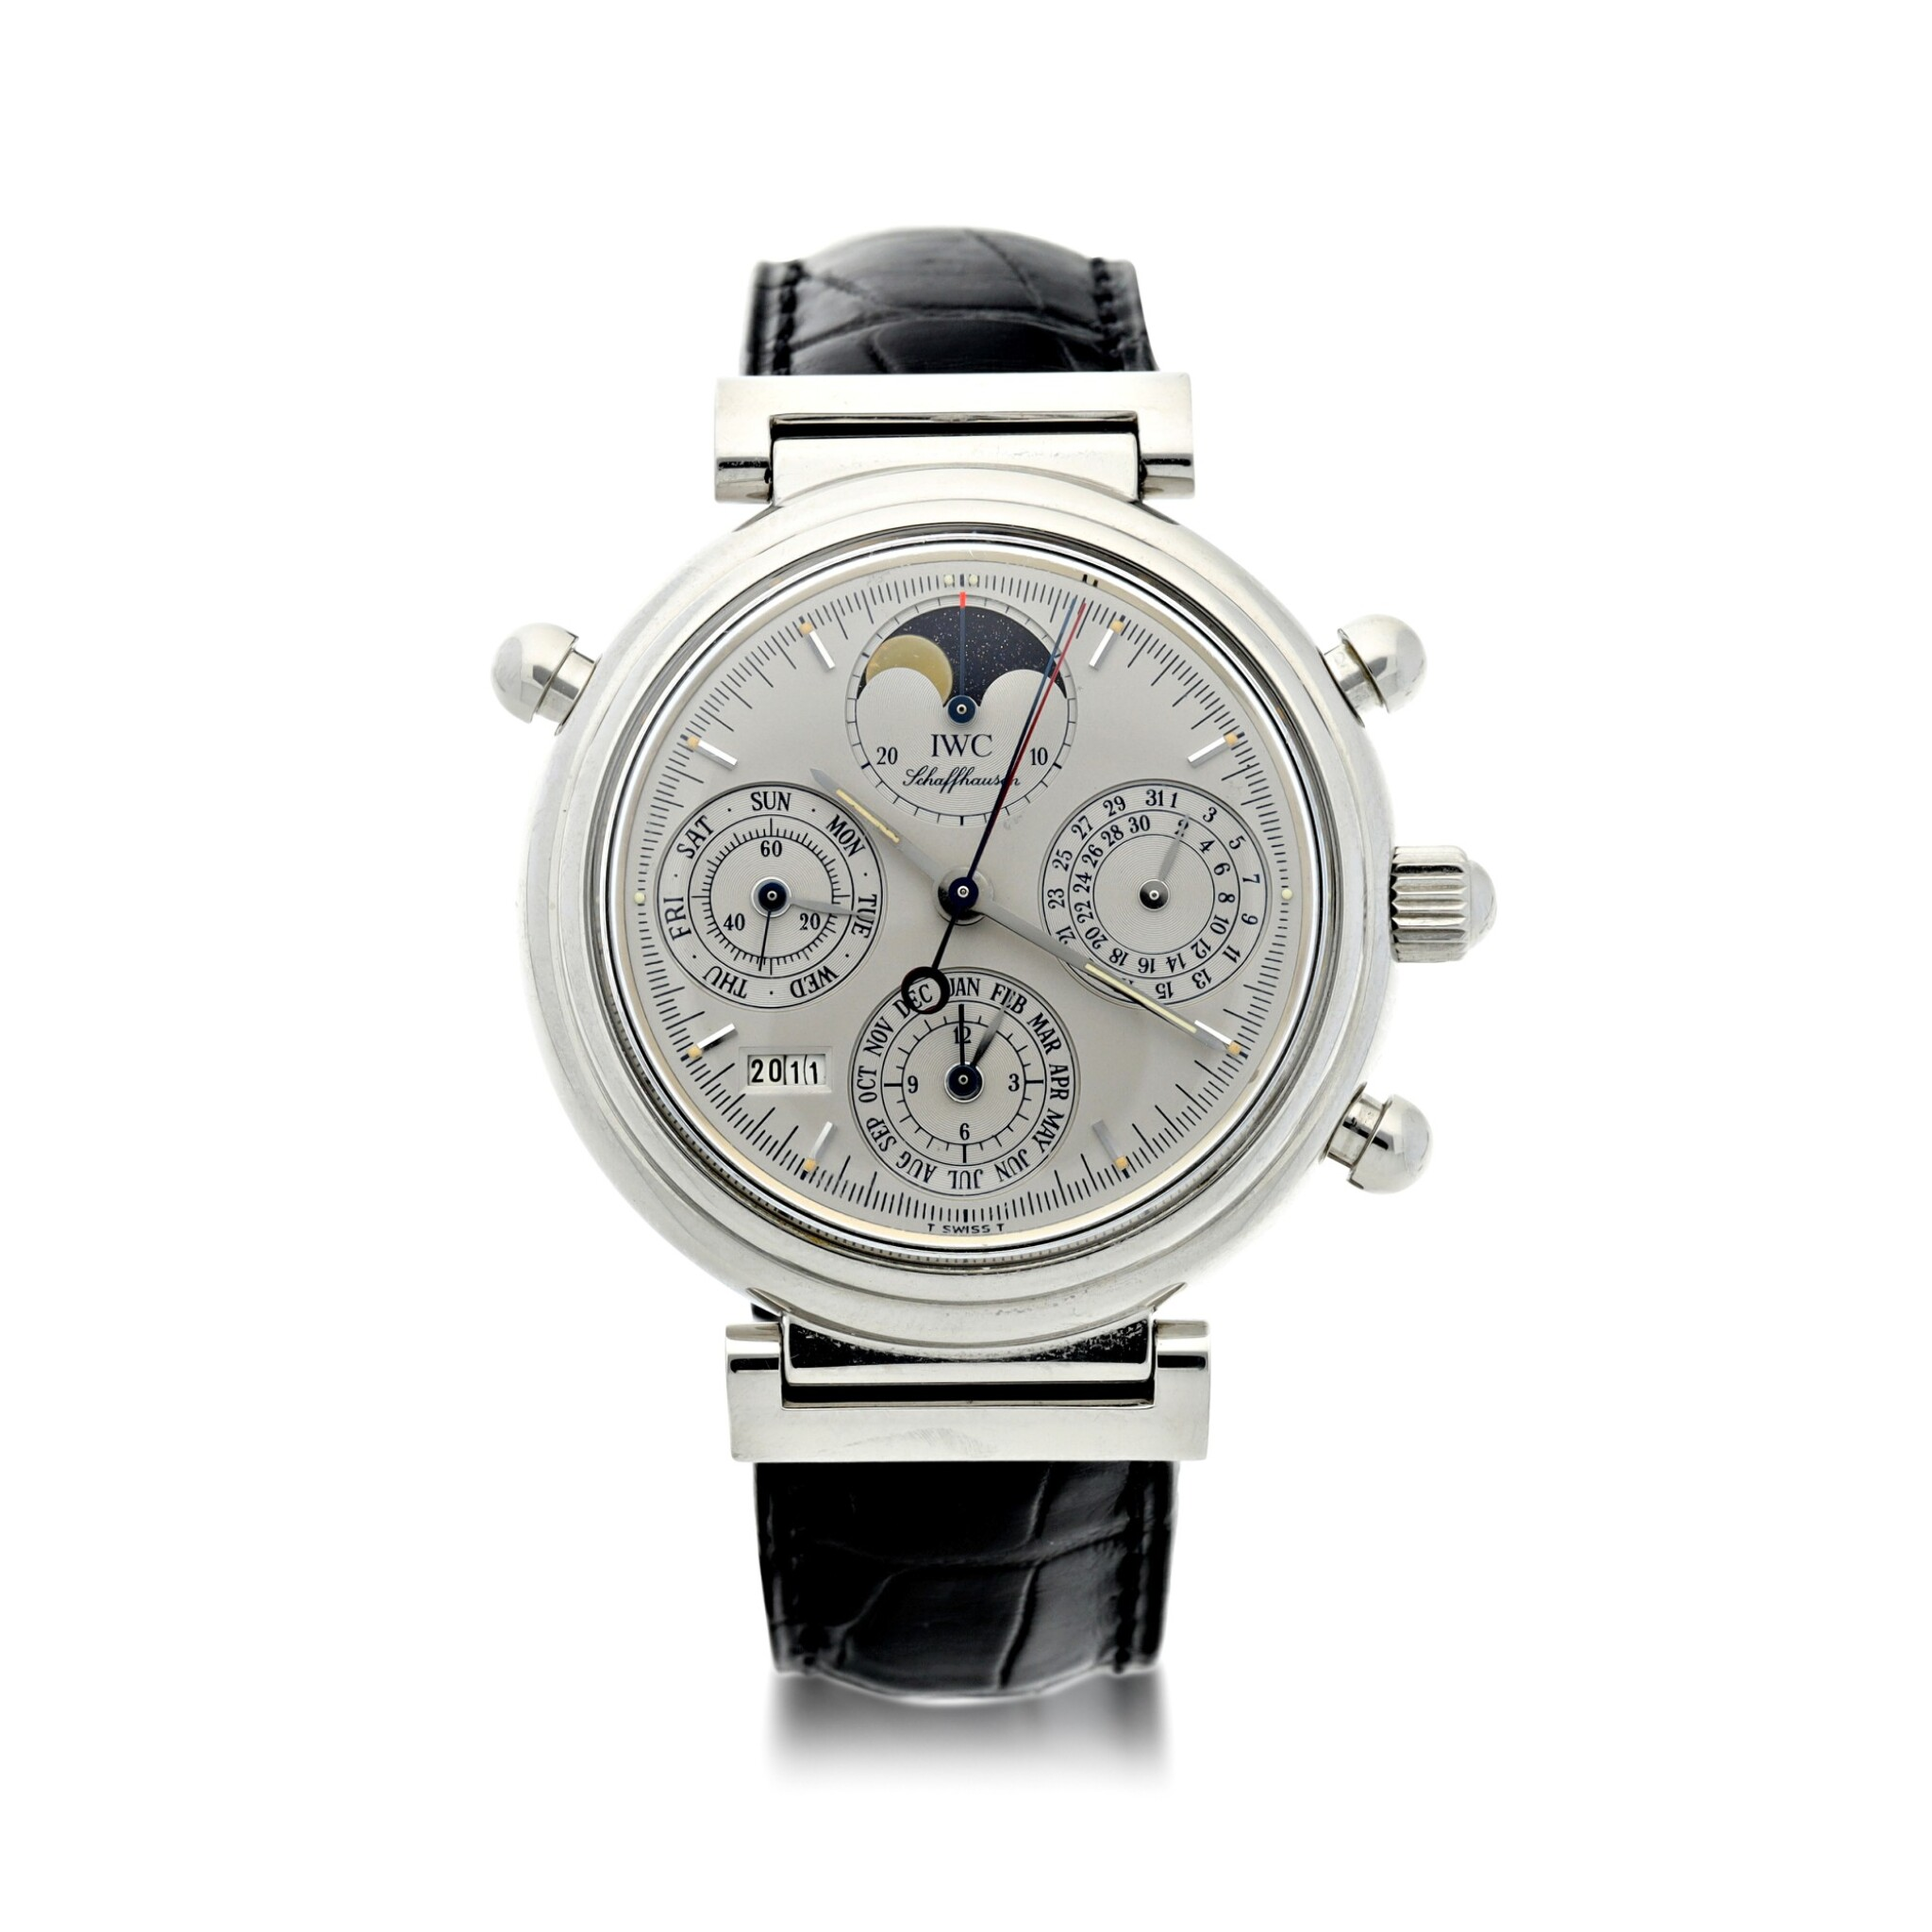 View full screen - View 1 of Lot 236. REFERENCE 3751 DA VINCI PERPETUAL RATTRAPANTE A LIMITED EDITION PLATINUM AUTOMATIC PERPETUAL CALENDAR SPLIT SECONDS CHRONOGRAPH WRISTWATCH WITH MOON PHASES AND YEAR DISPLAY, CIRCA 1998.